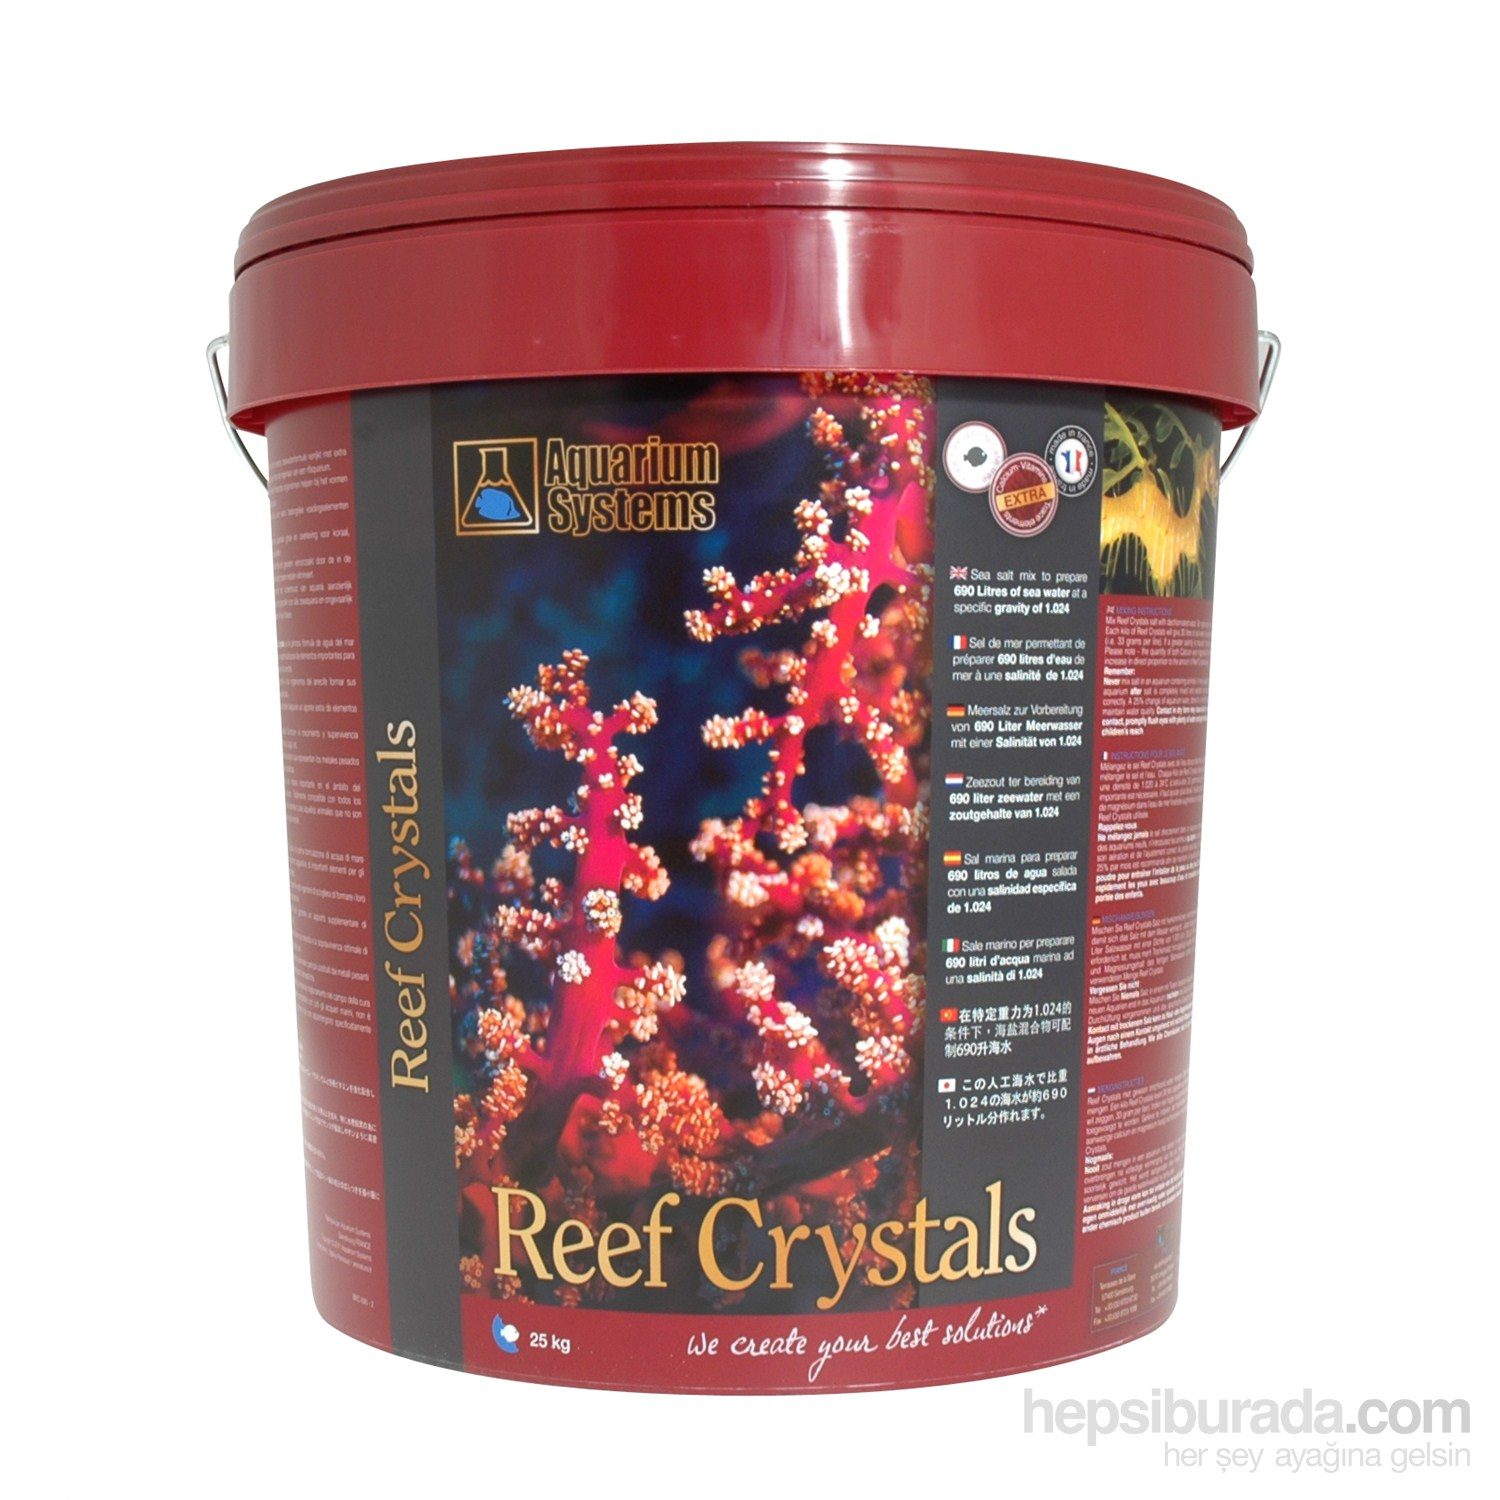 Aquarium Systems Reef Crystals 25 Kg Kova Sentetik Mercan Tuzu